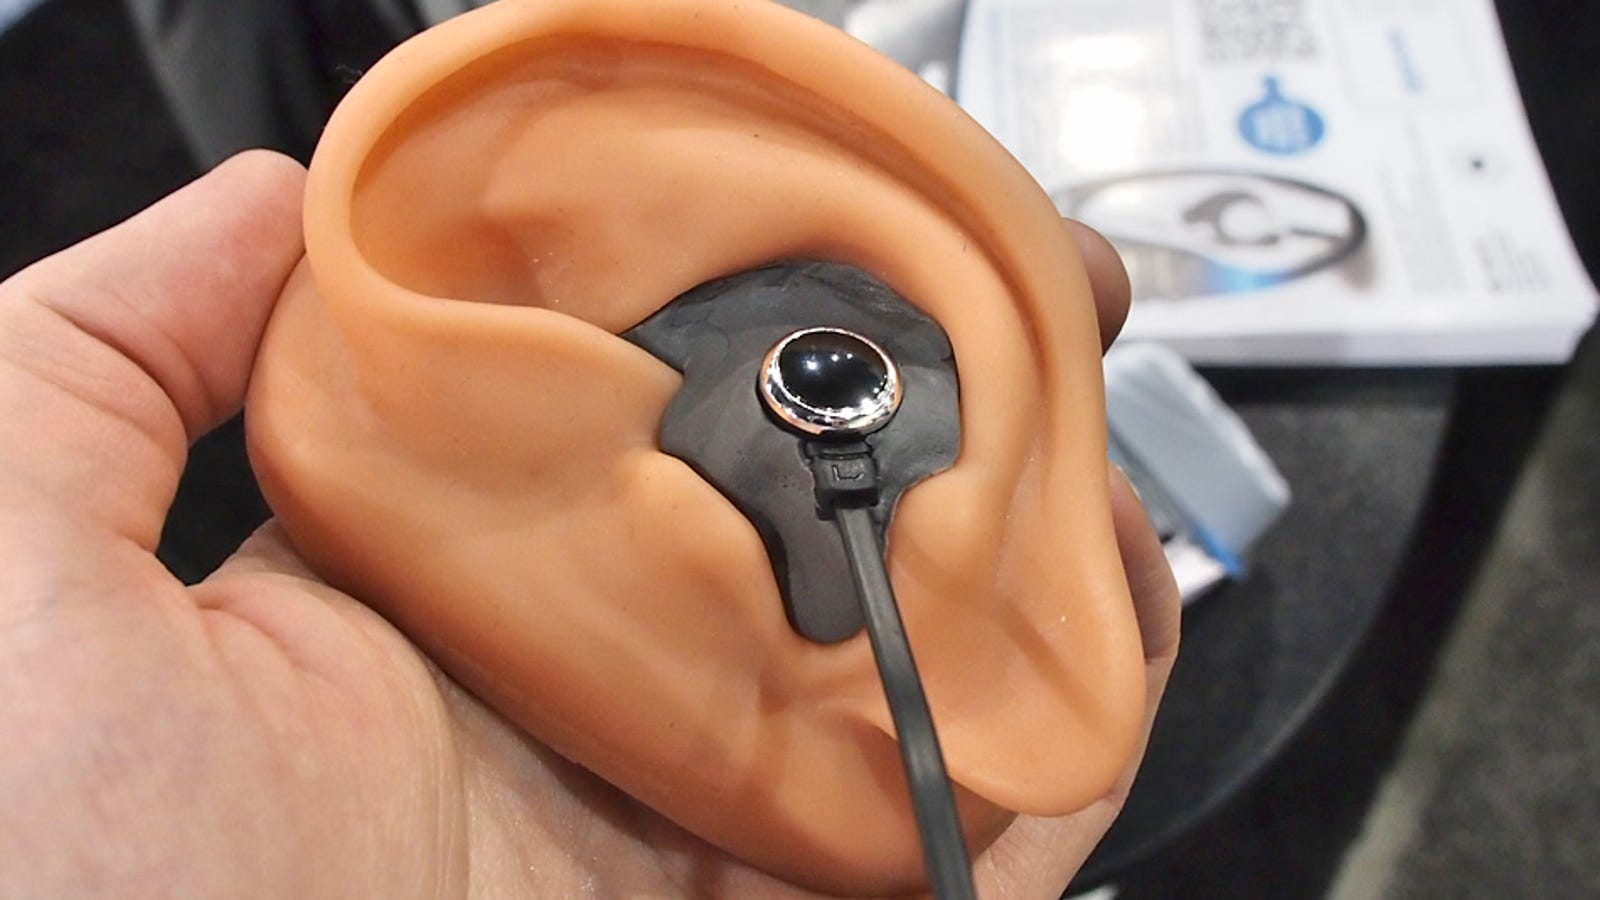 earbuds x10 - Sharkfin Promises Custom-Fitted Earbuds For Just $5